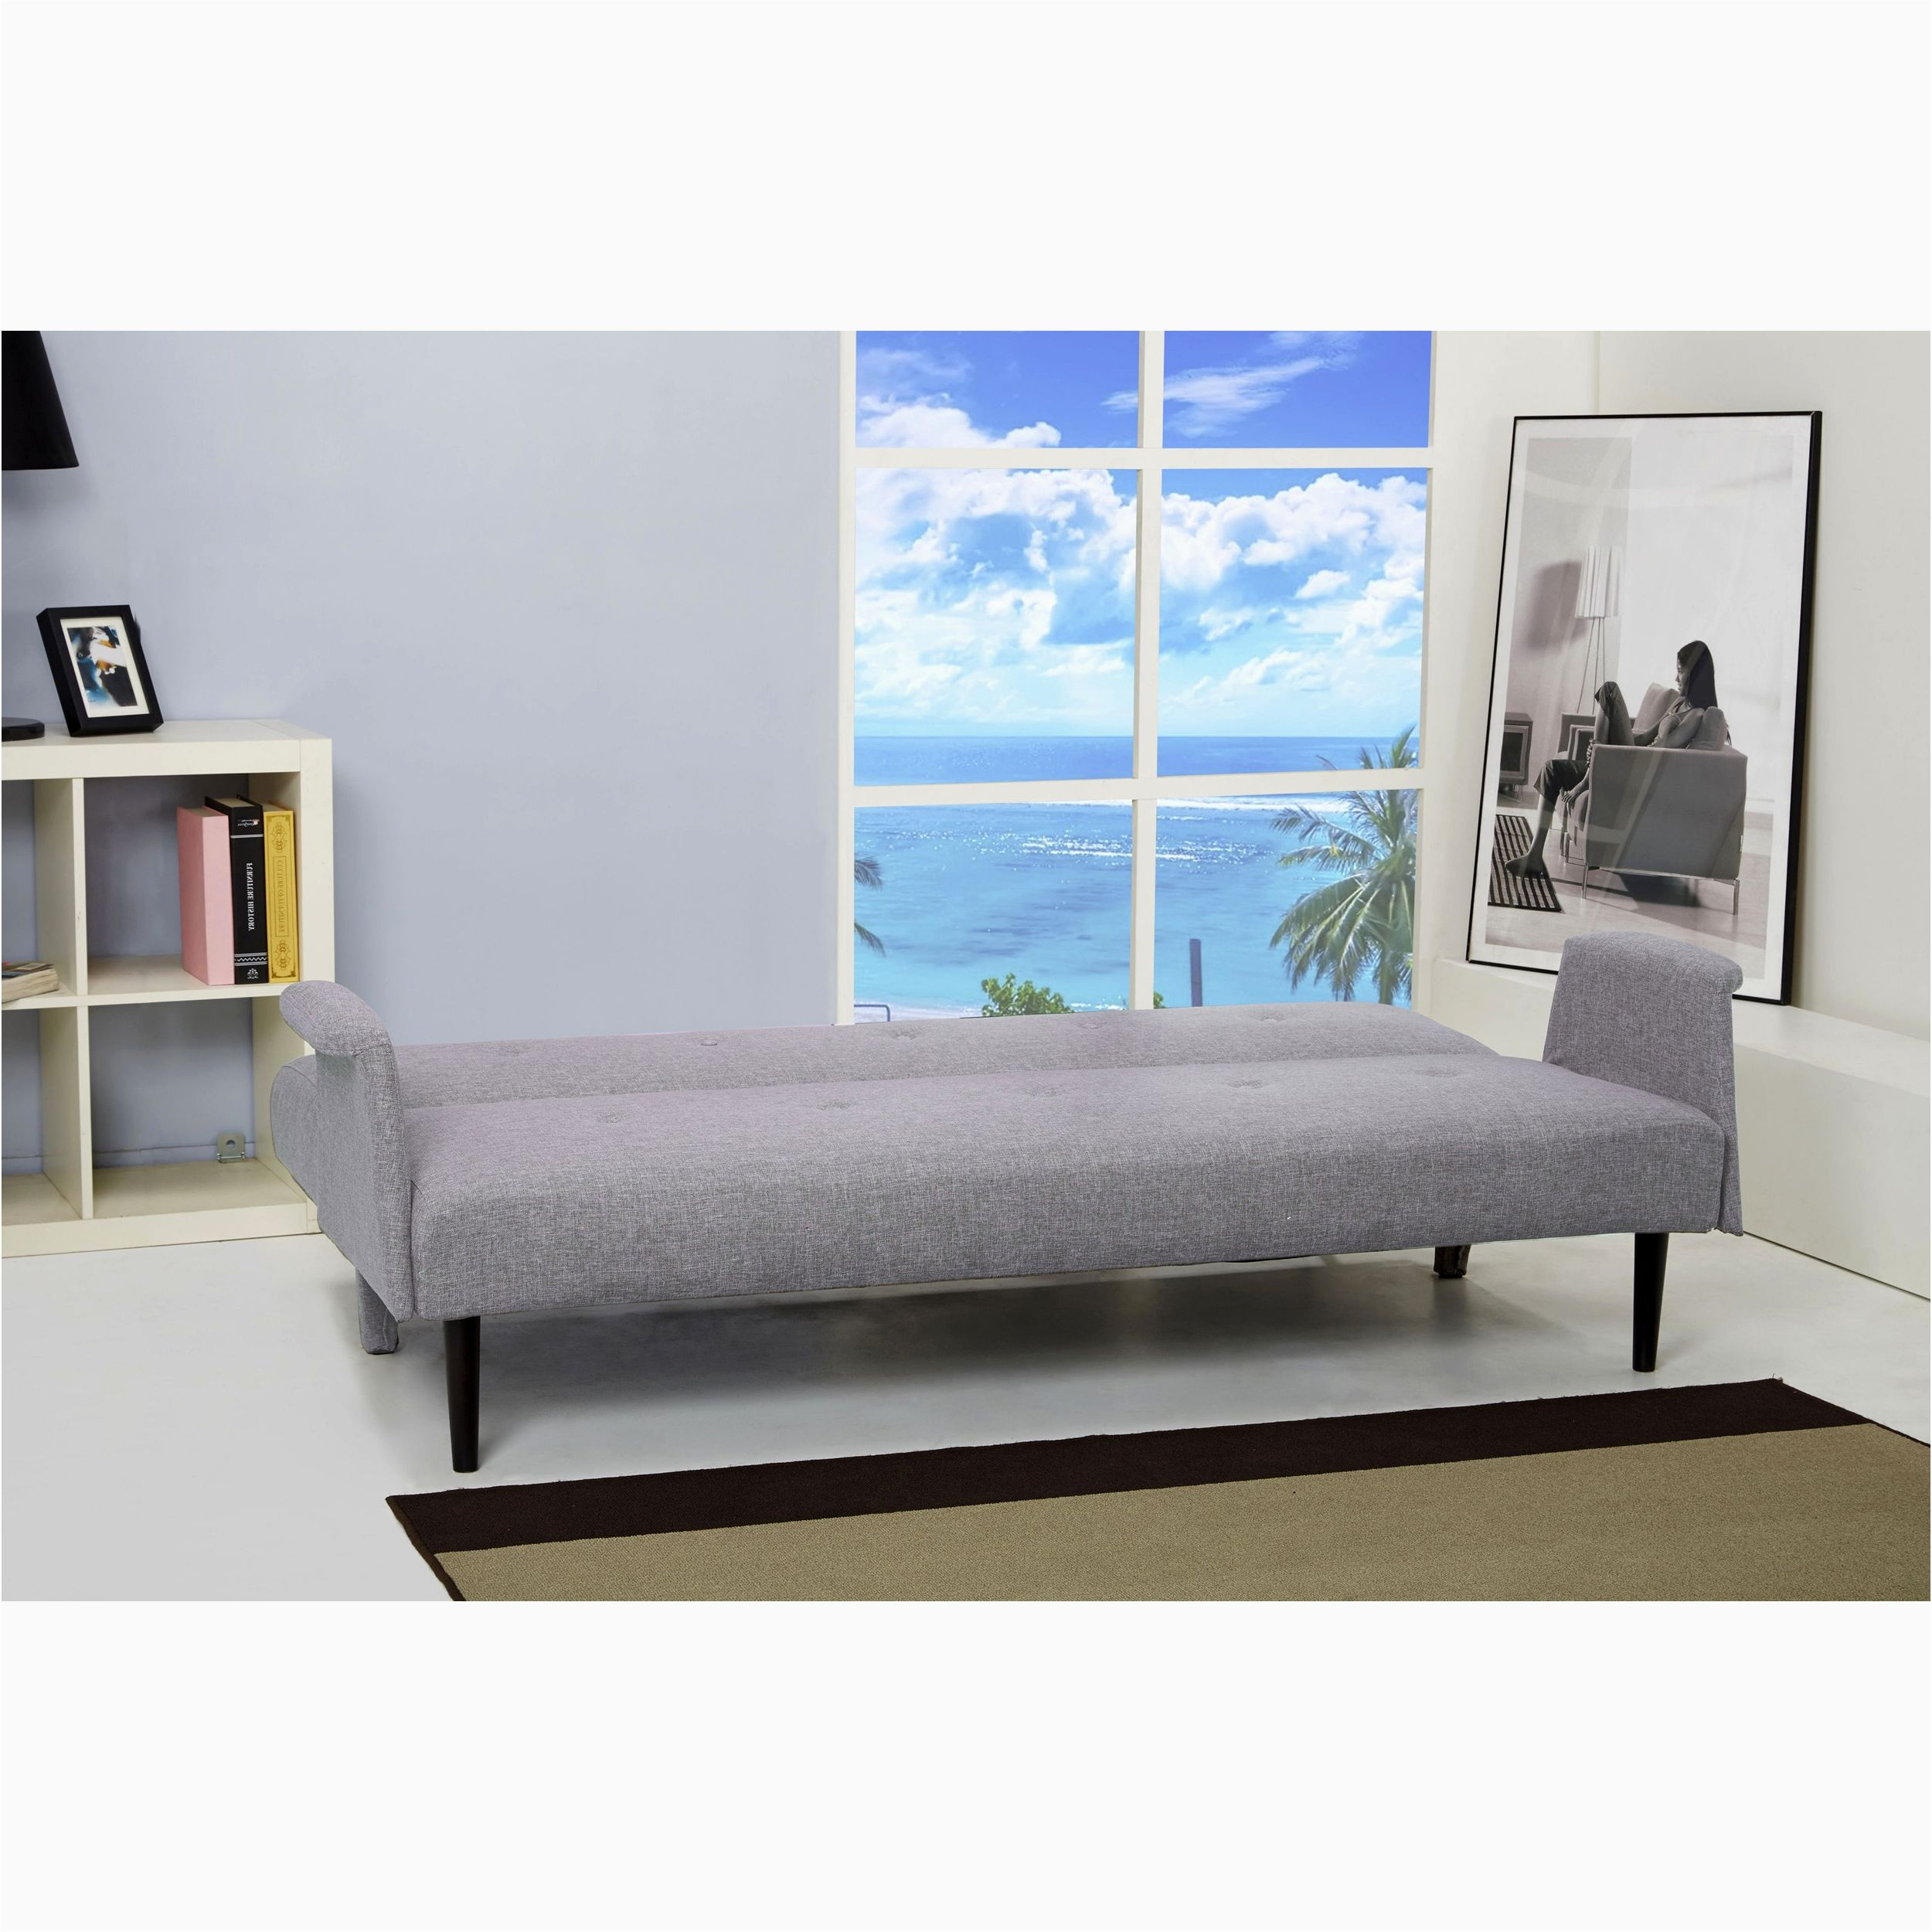 stunning jack knife sofa decoration-Lovely Jack Knife sofa Gallery